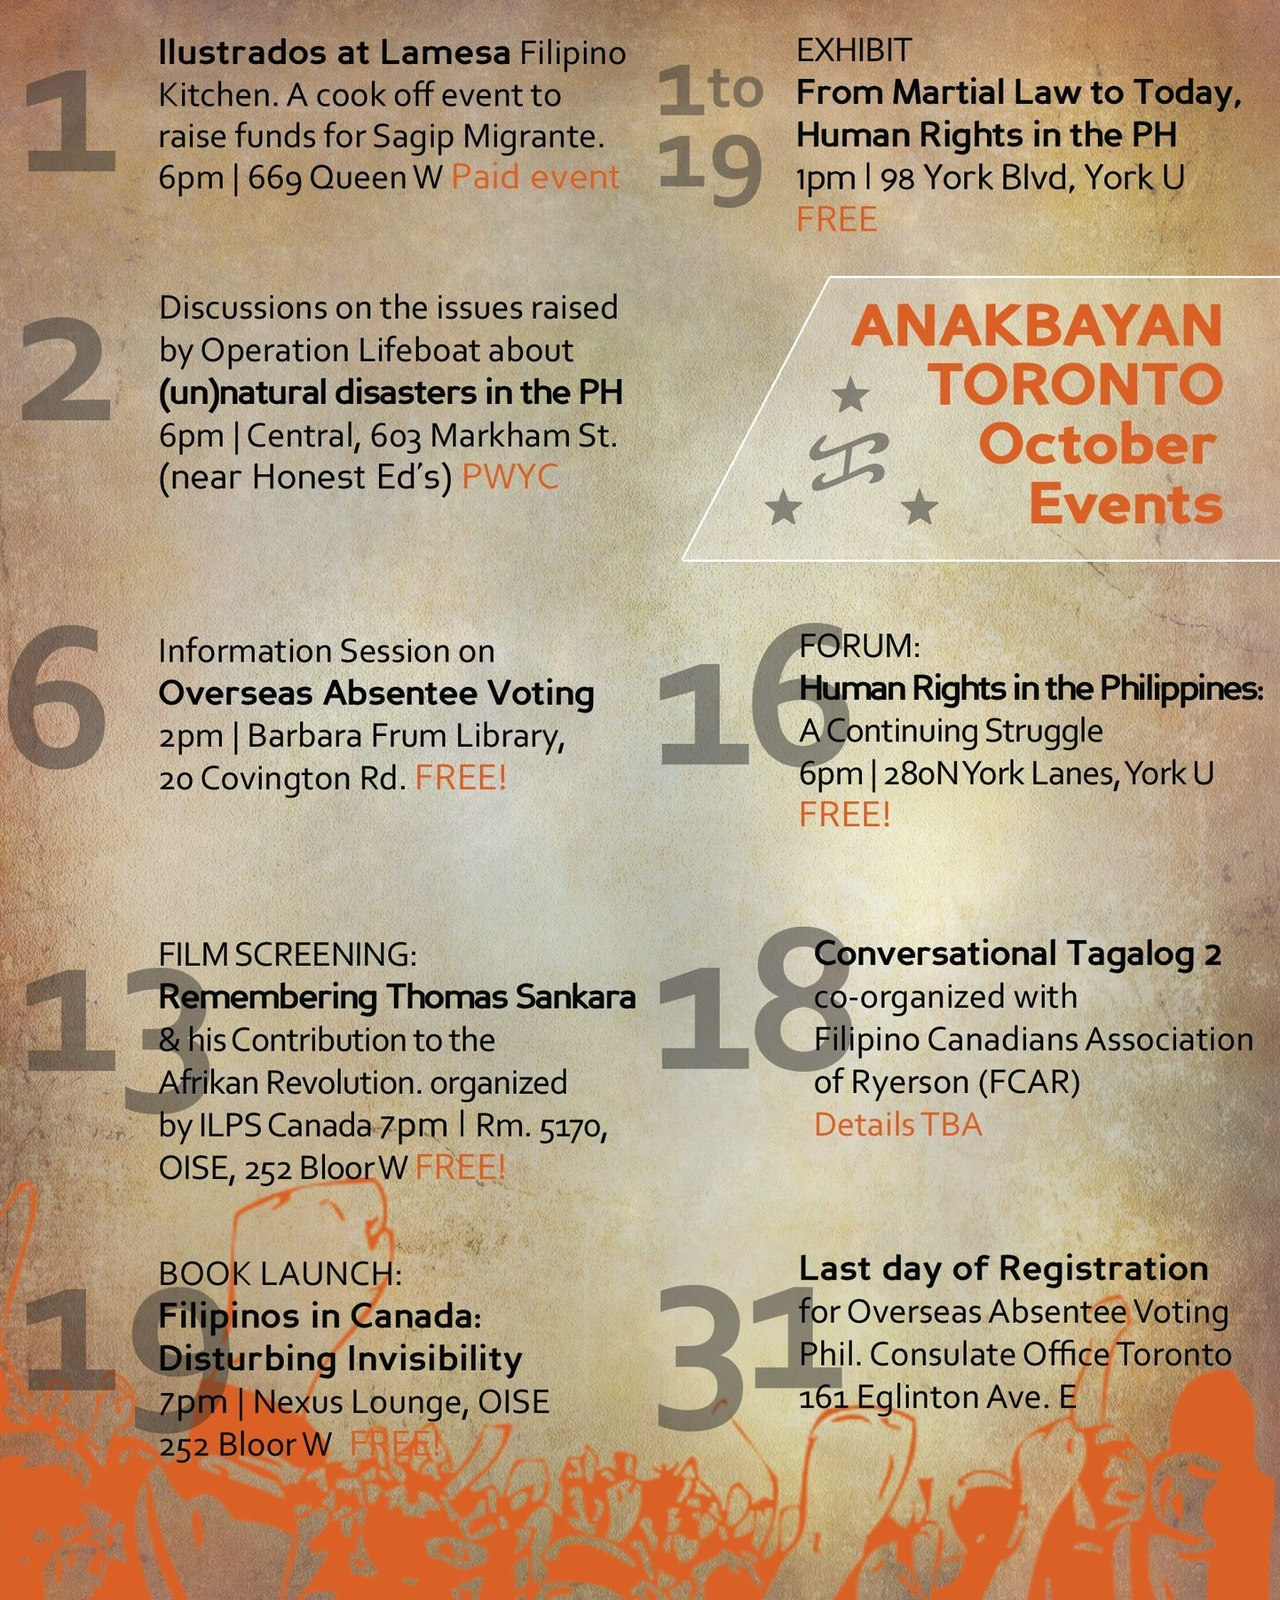 ANAKBAYAN-TORONTOevents in October 2012!Some FB event pages for the next couple weeks:Oct 3, 630p: Operation Lifeboat: Linking Canada and The Philippines via (Un)Natural DisastersOct 2-19: Free Public Exhibition @ York University: From Martial Law to Today, Human Rights in the PhilippinesOct 16, 6p: Human Rights in the Philippines: A Continuing Struggle